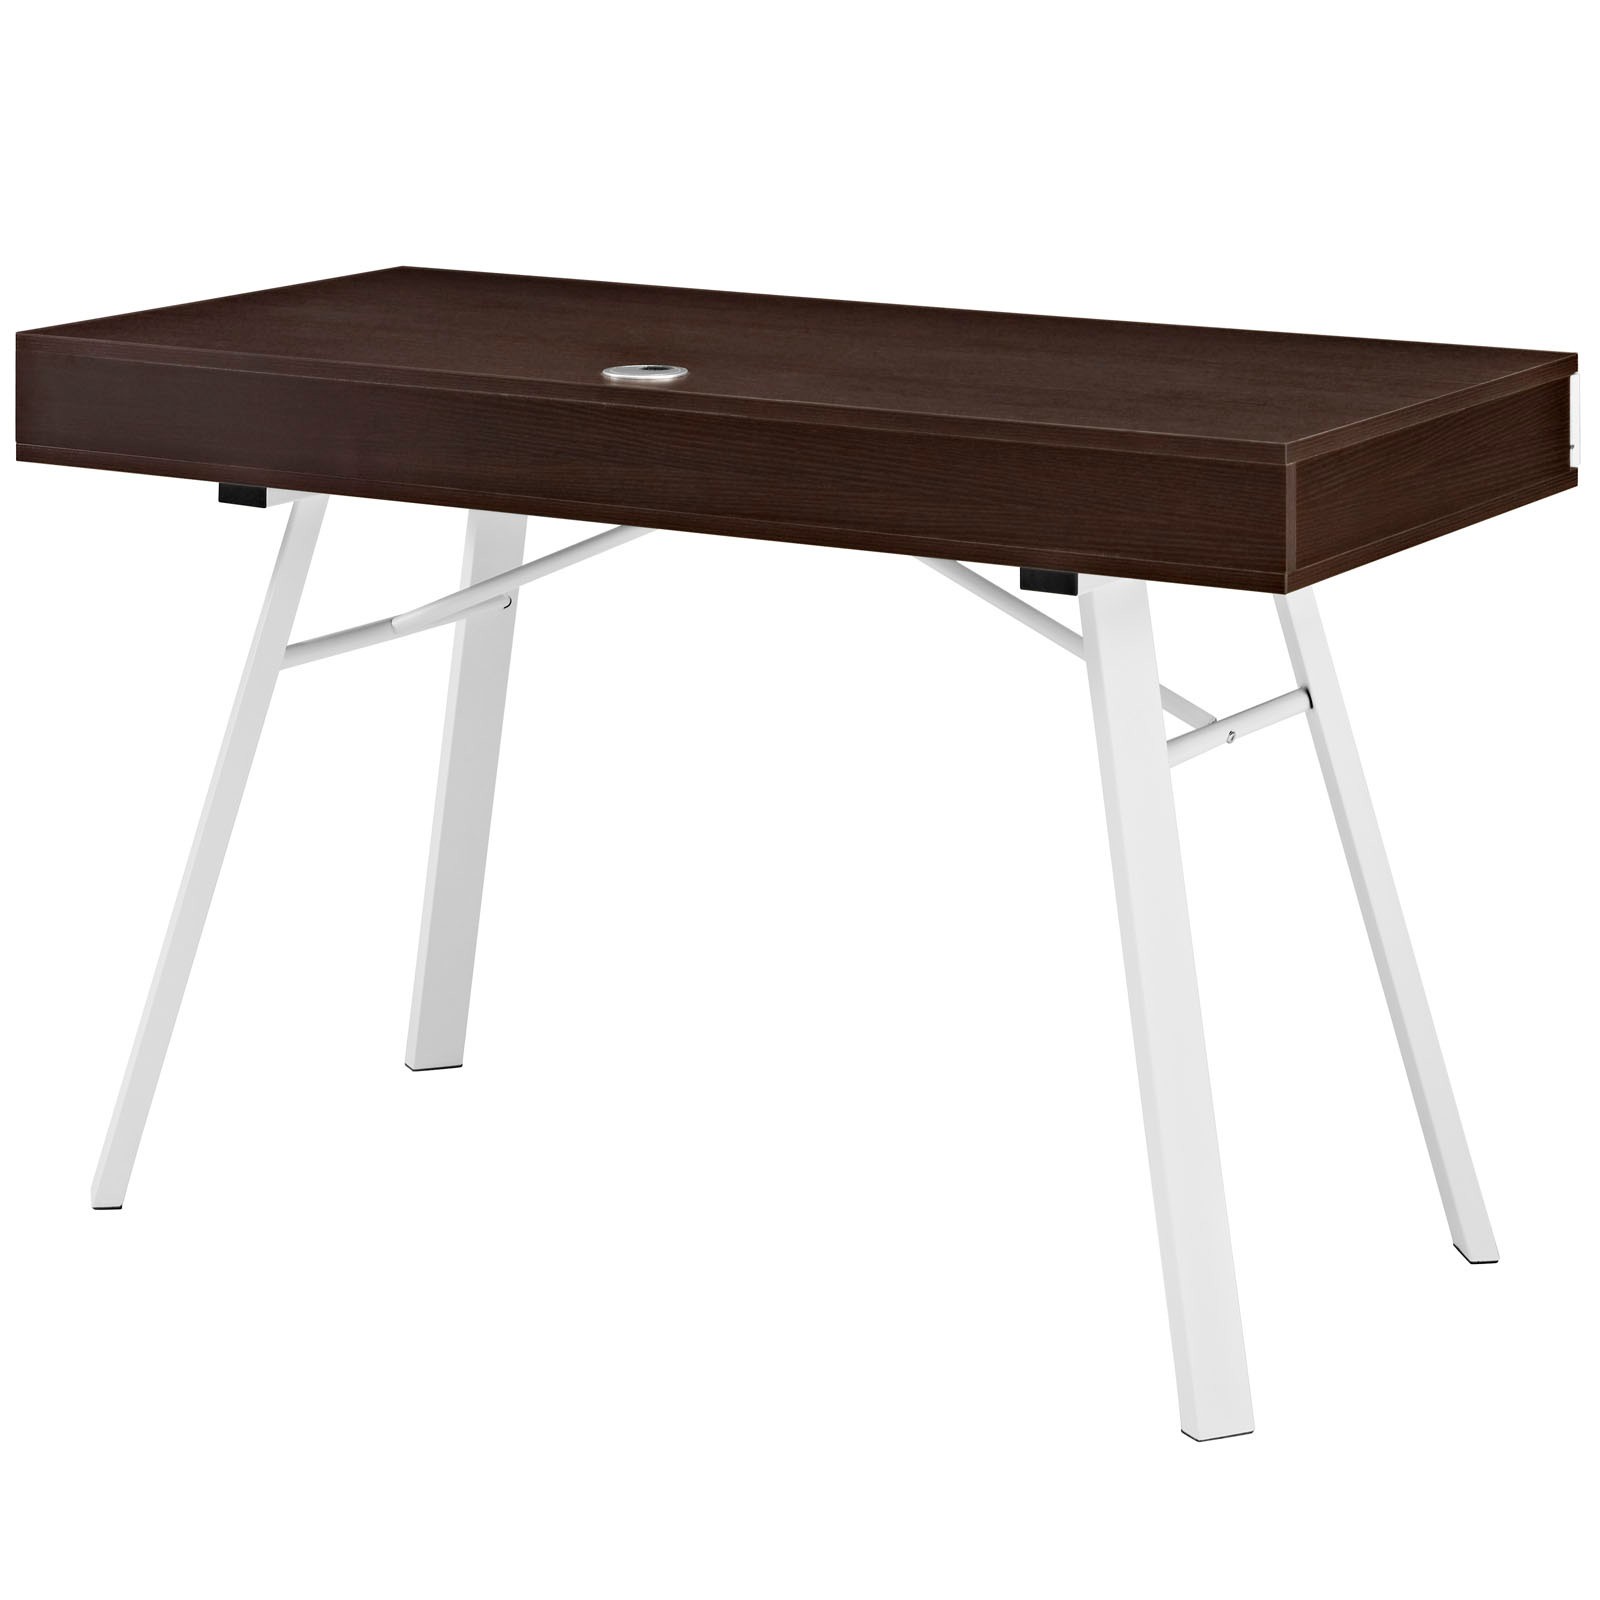 space saving desk from modway back view shown in cherry brown - Space Saving Desk